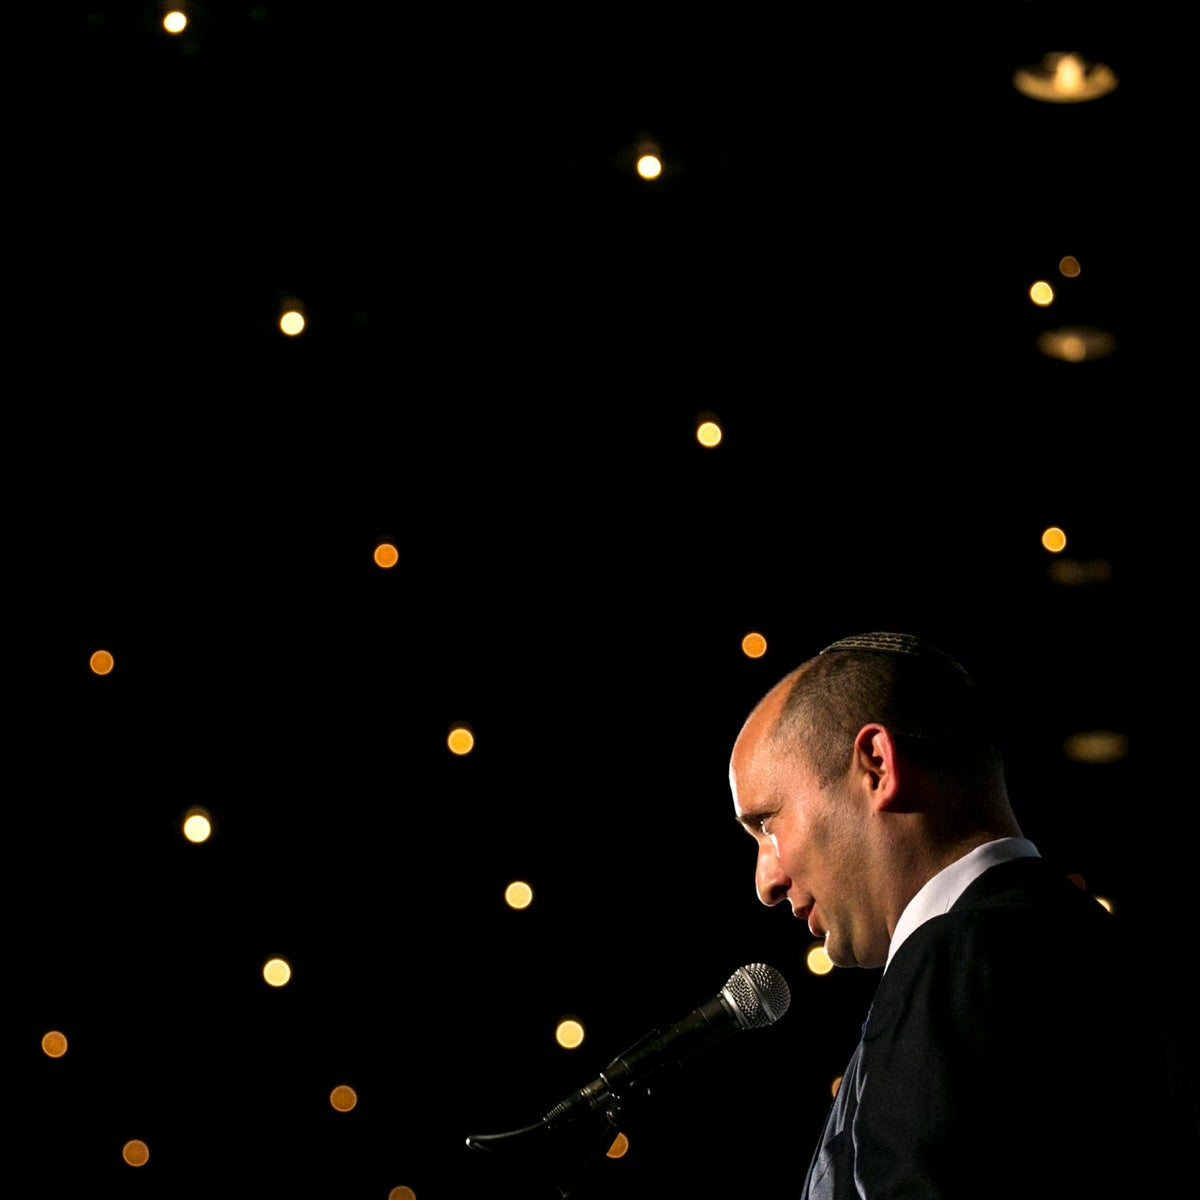 Naftali Bennett in 2013, his first year as a lawmaker.